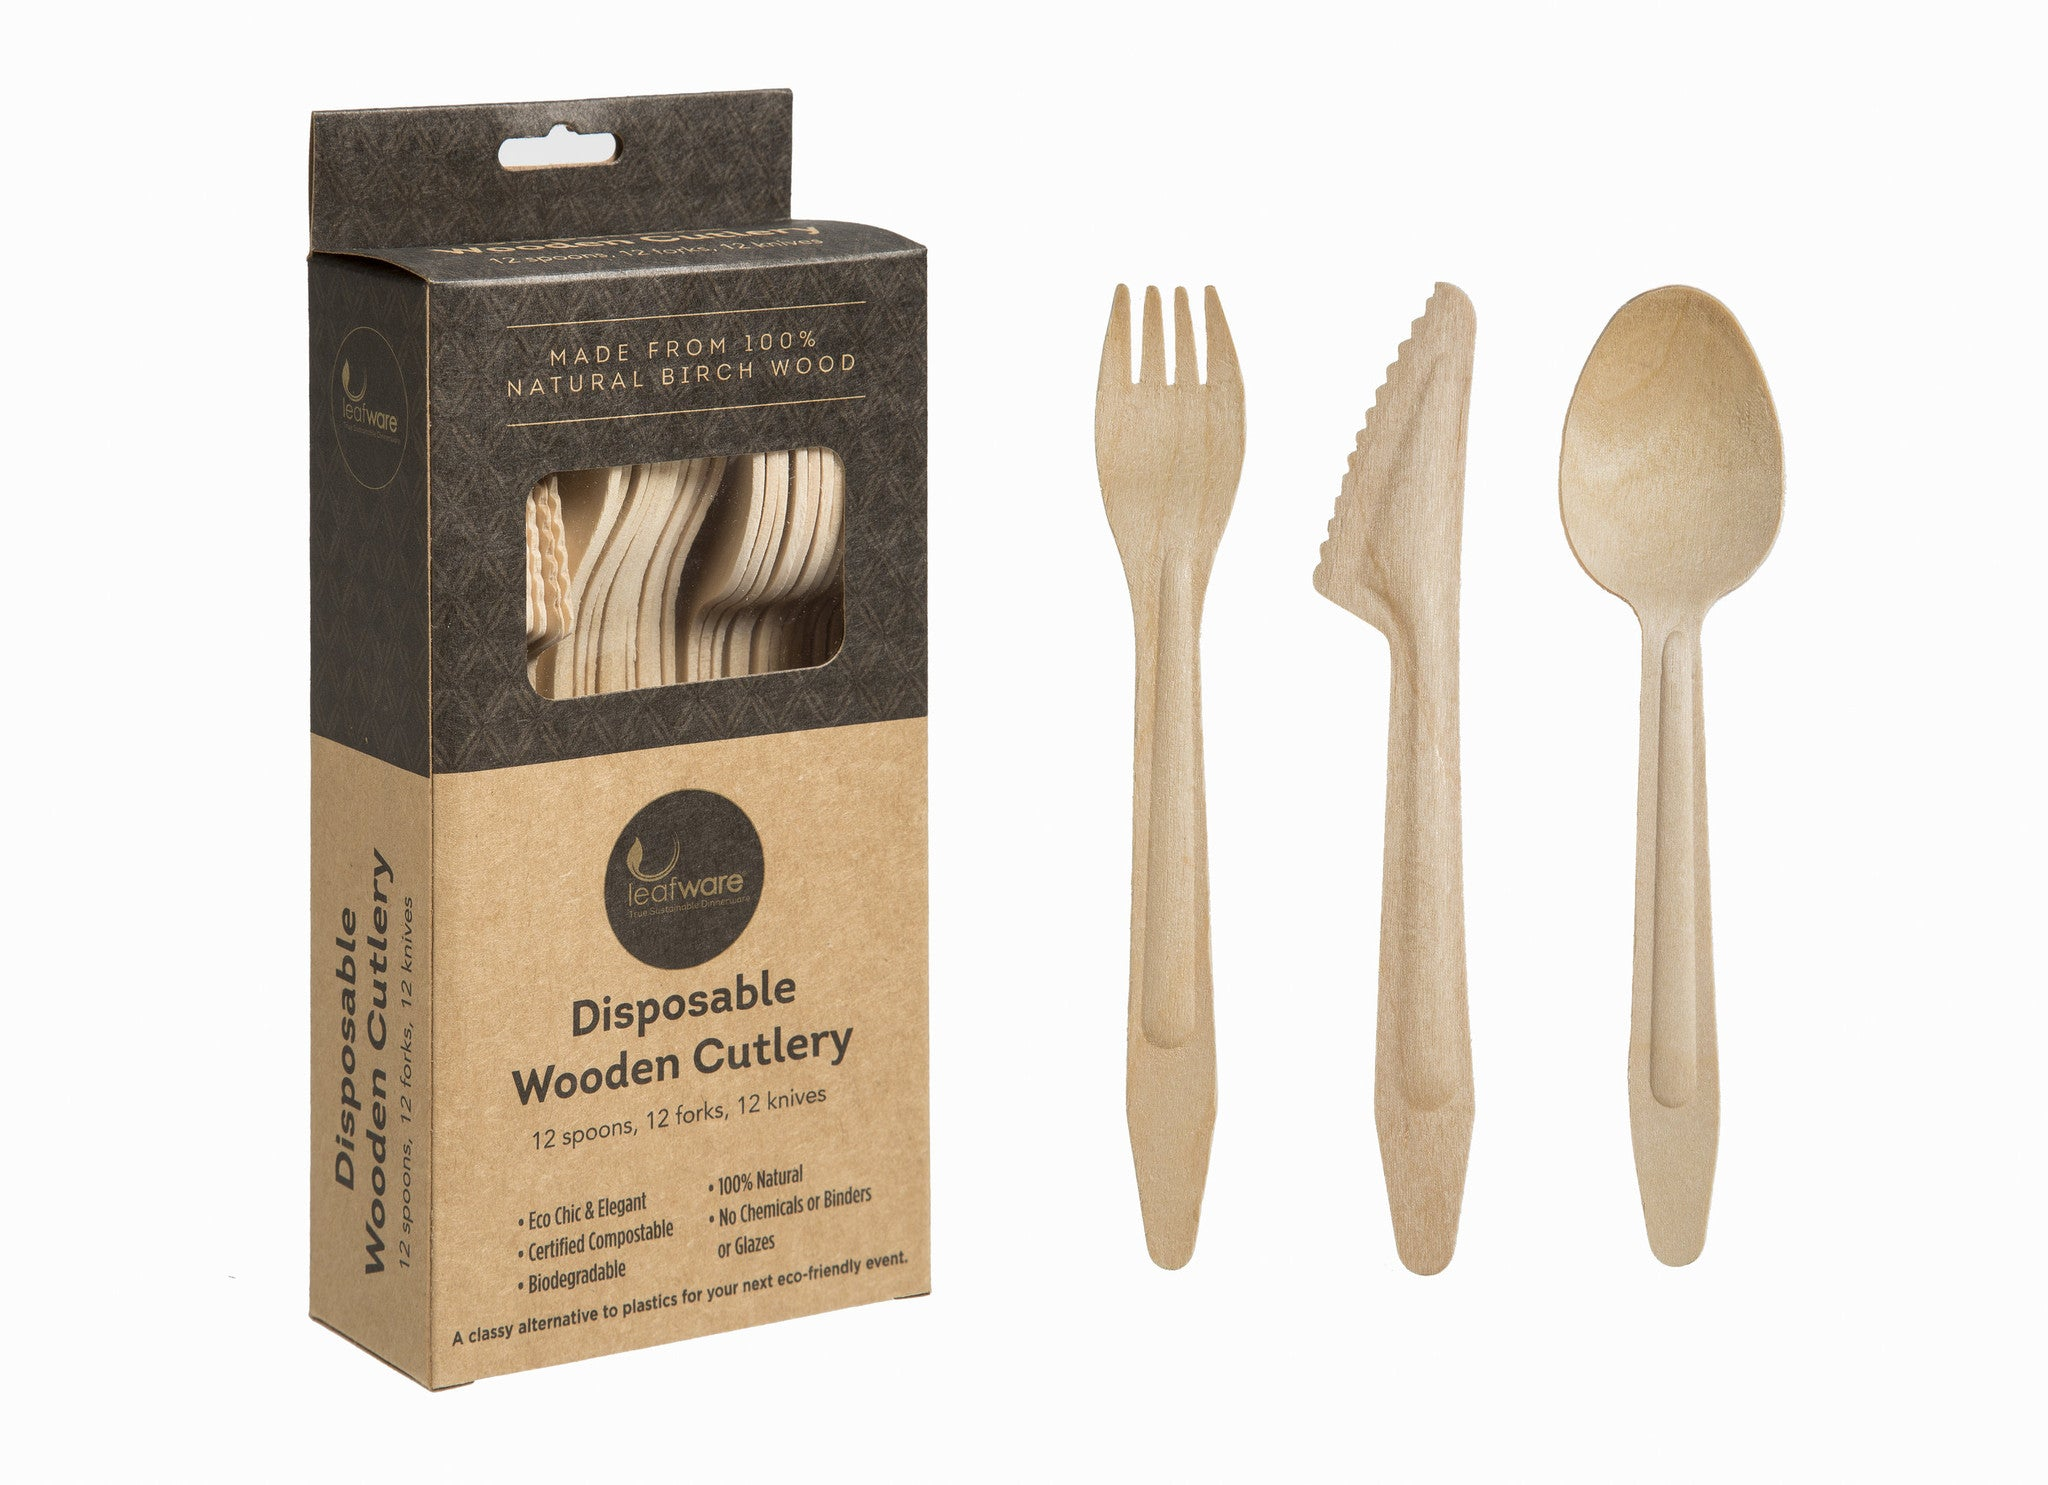 Plastic Fork Alternatives Silverware Party Pack At